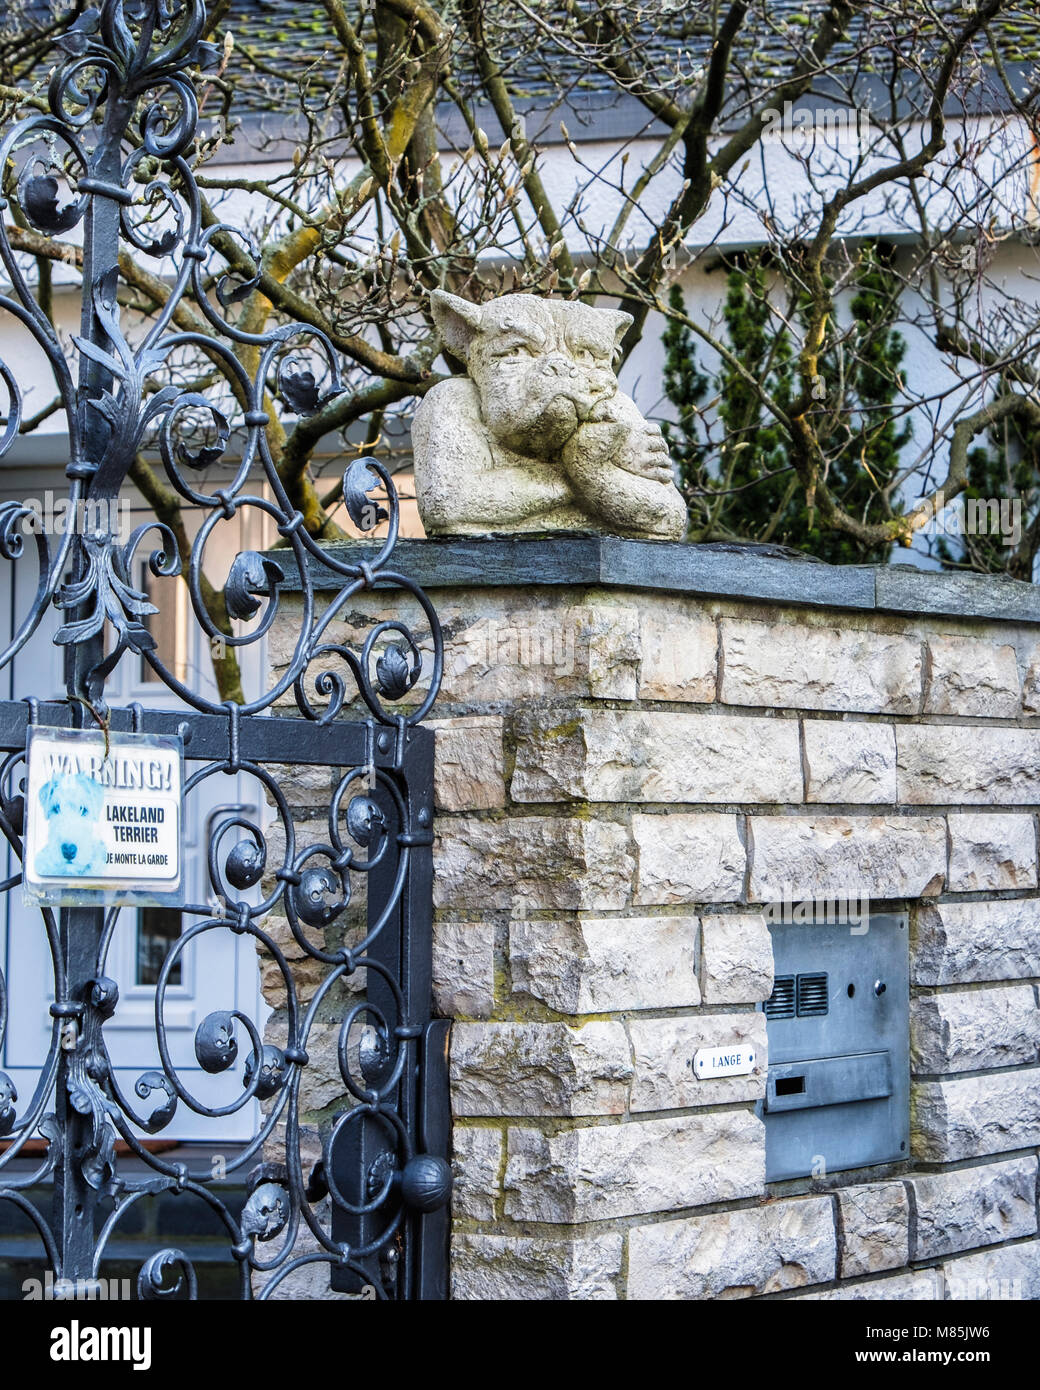 Berlin, Zehlenfdorf. Garden detail, comical grumpy dog ornament and decorative wrought iron gate - Stock Image